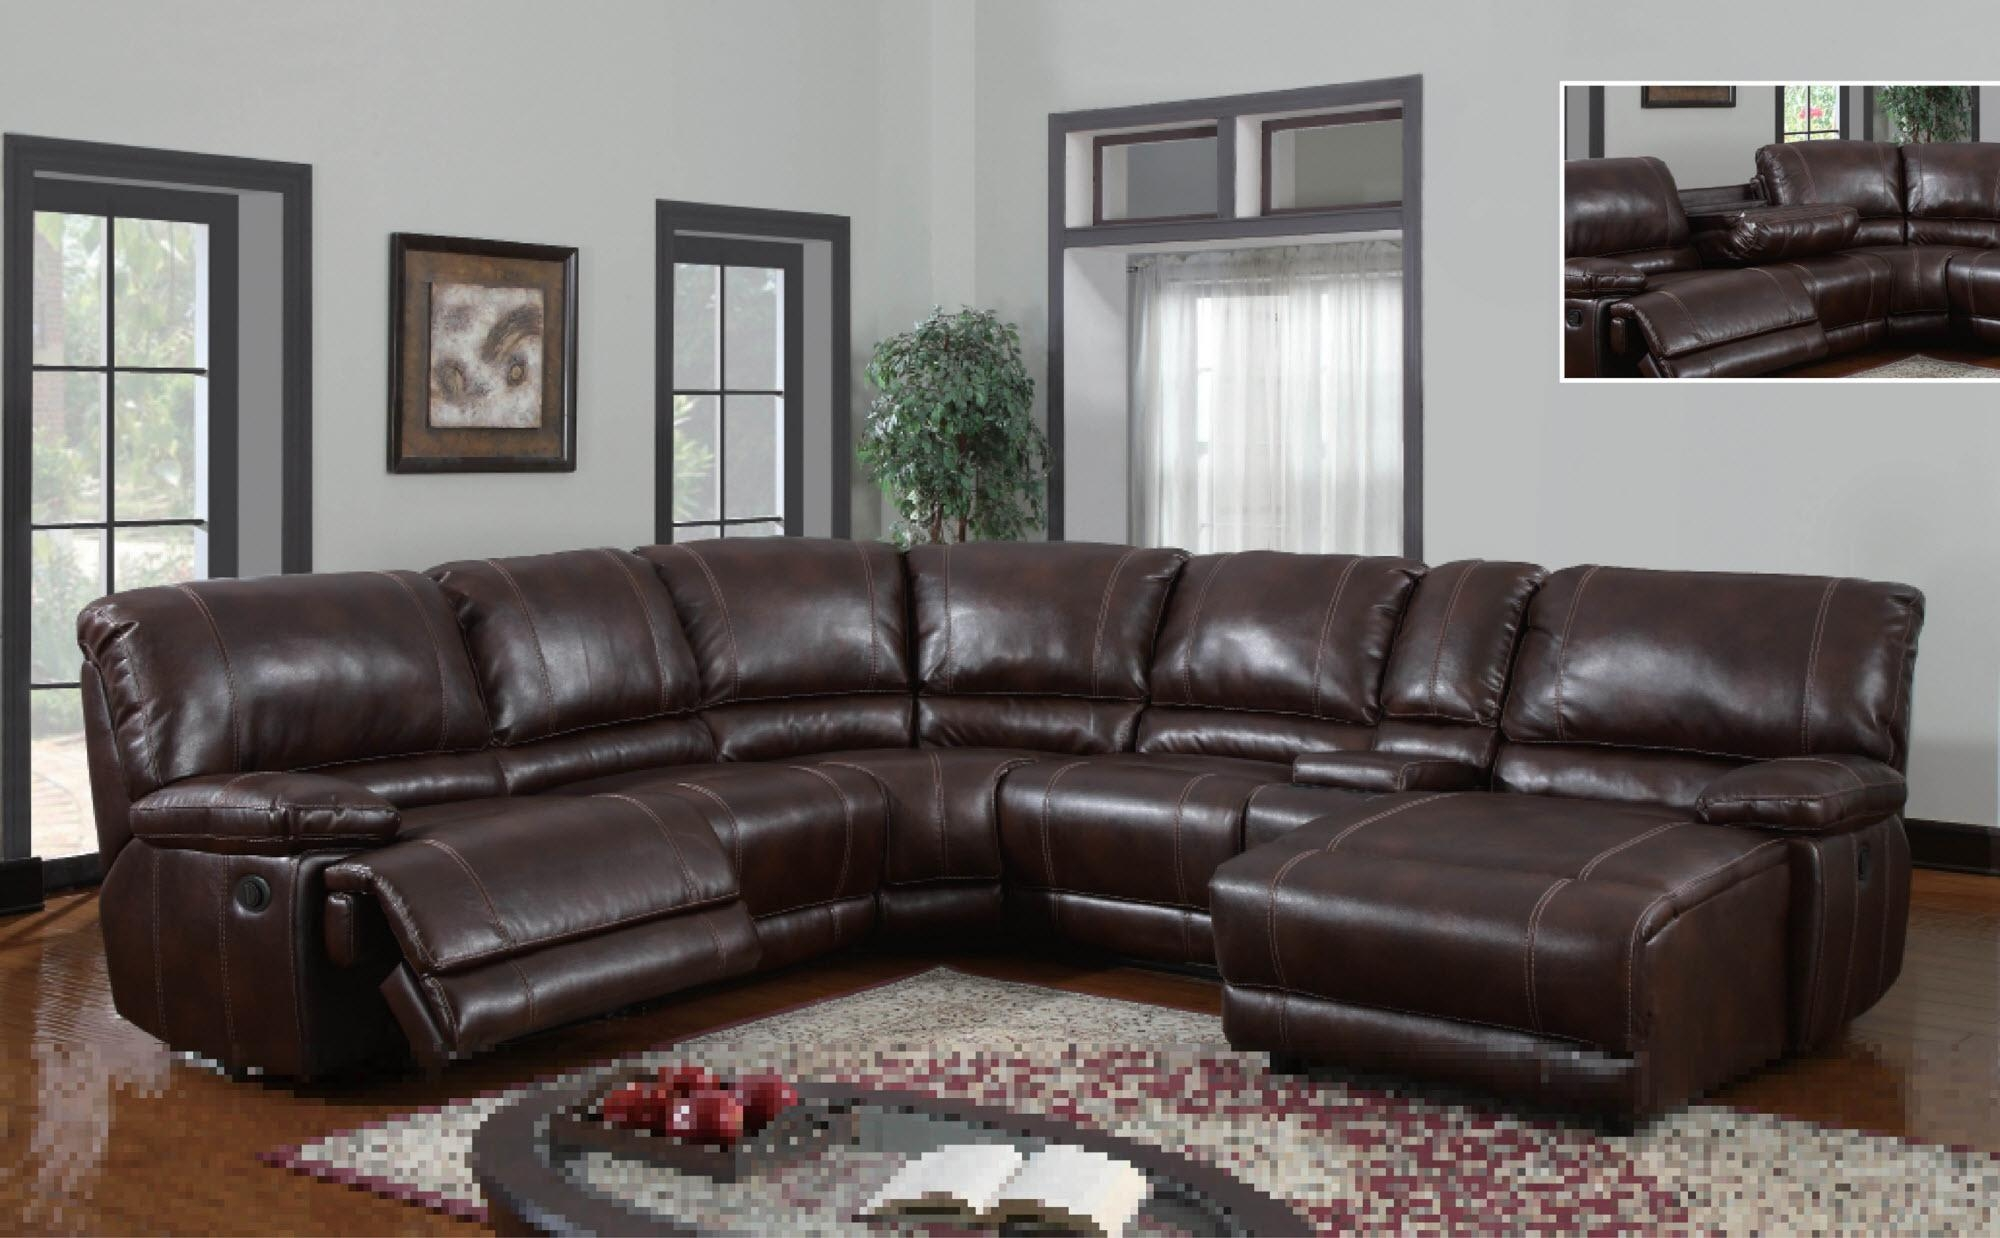 Sofas: Simmons Sleeper Sofa | Simmons Furniture Outlet | Simmons Sofa With Regard To Simmons Sectional Sofas (Image 18 of 20)